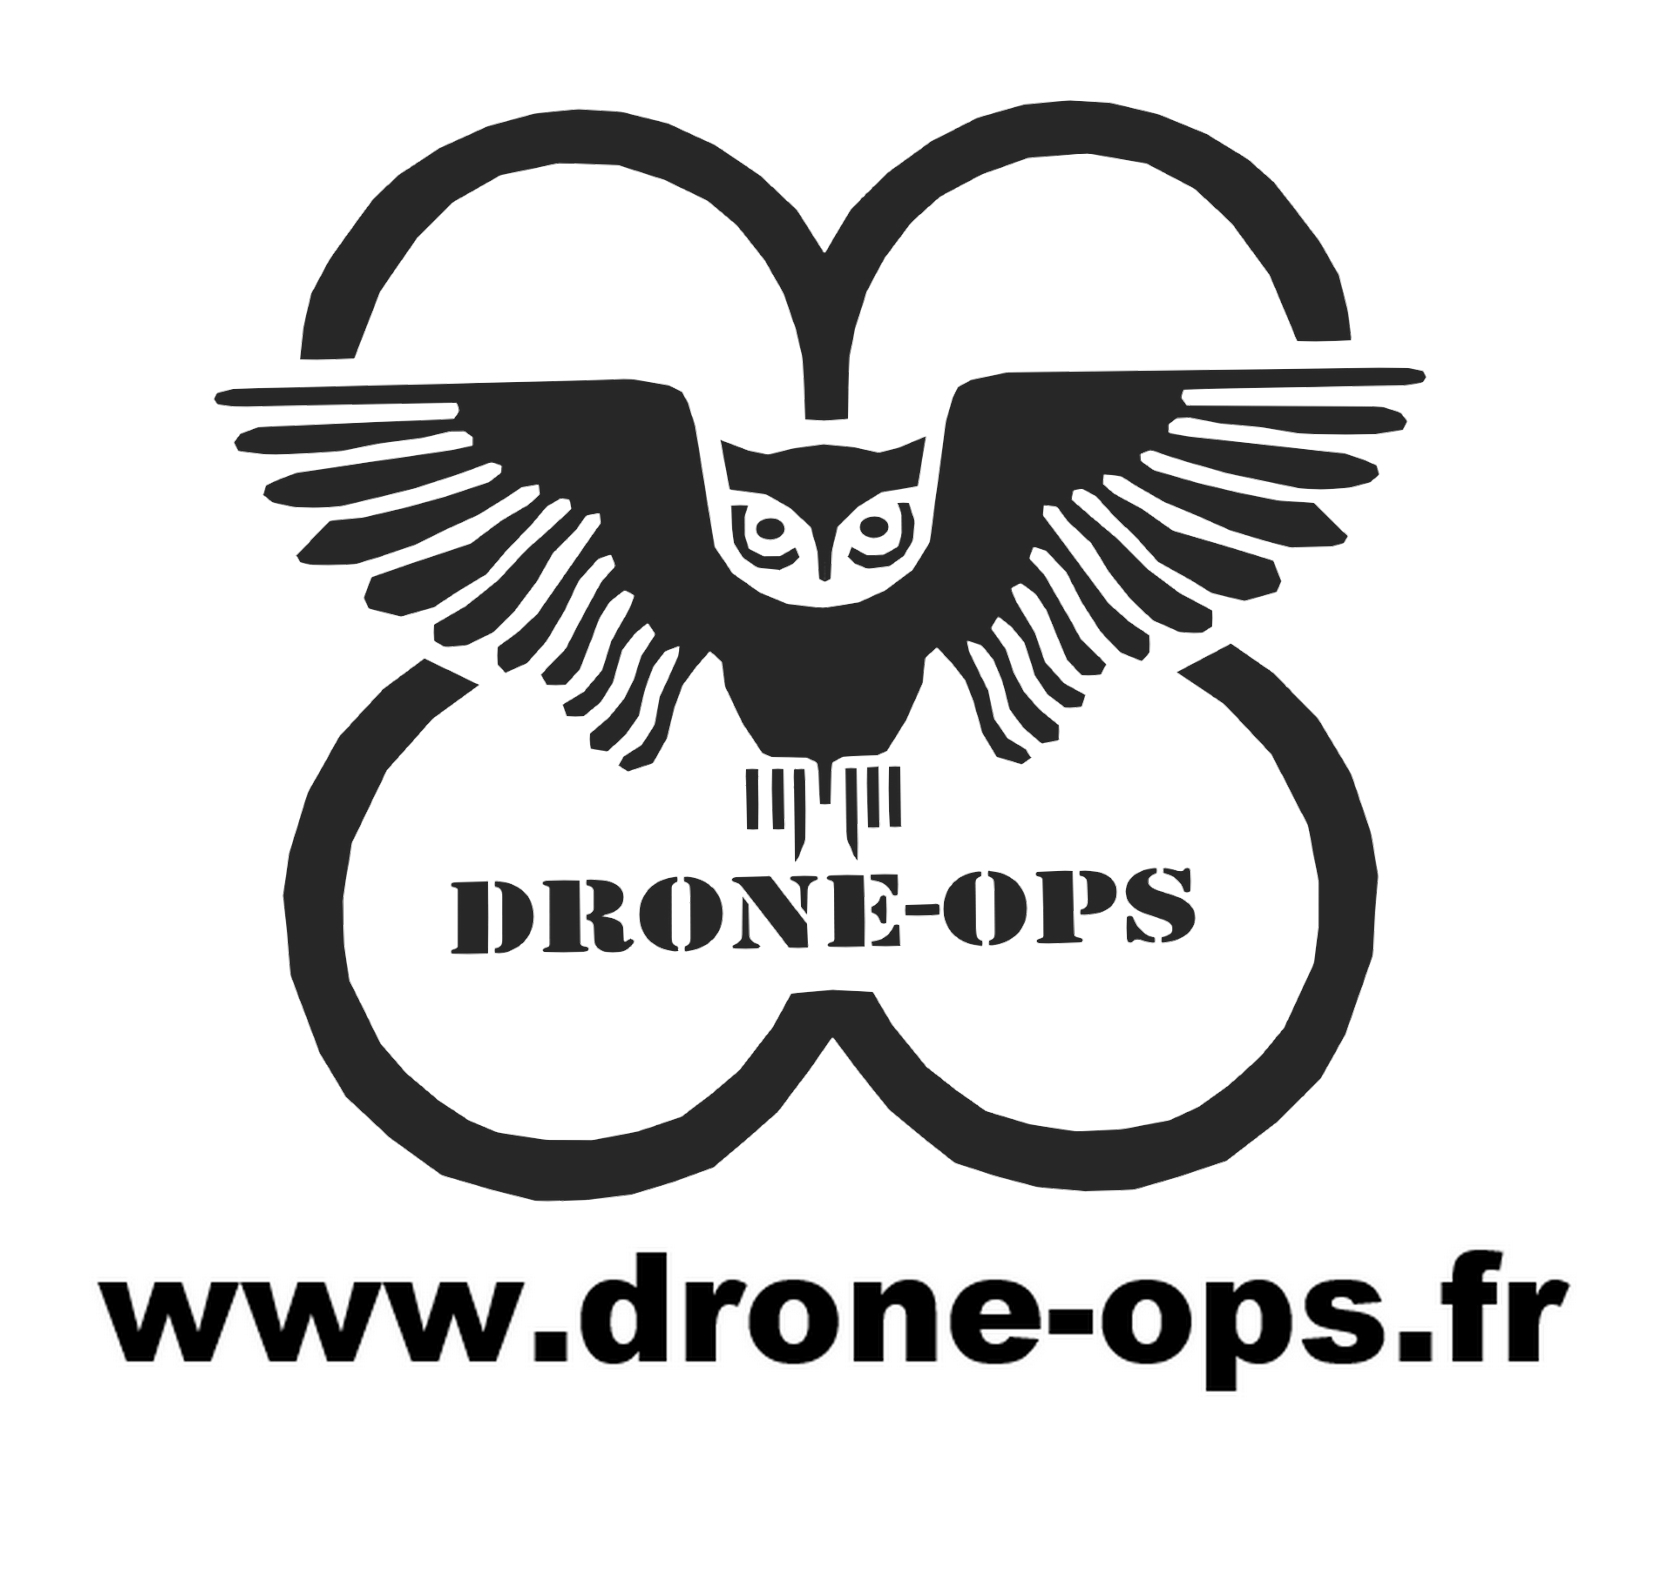 Drone-ops